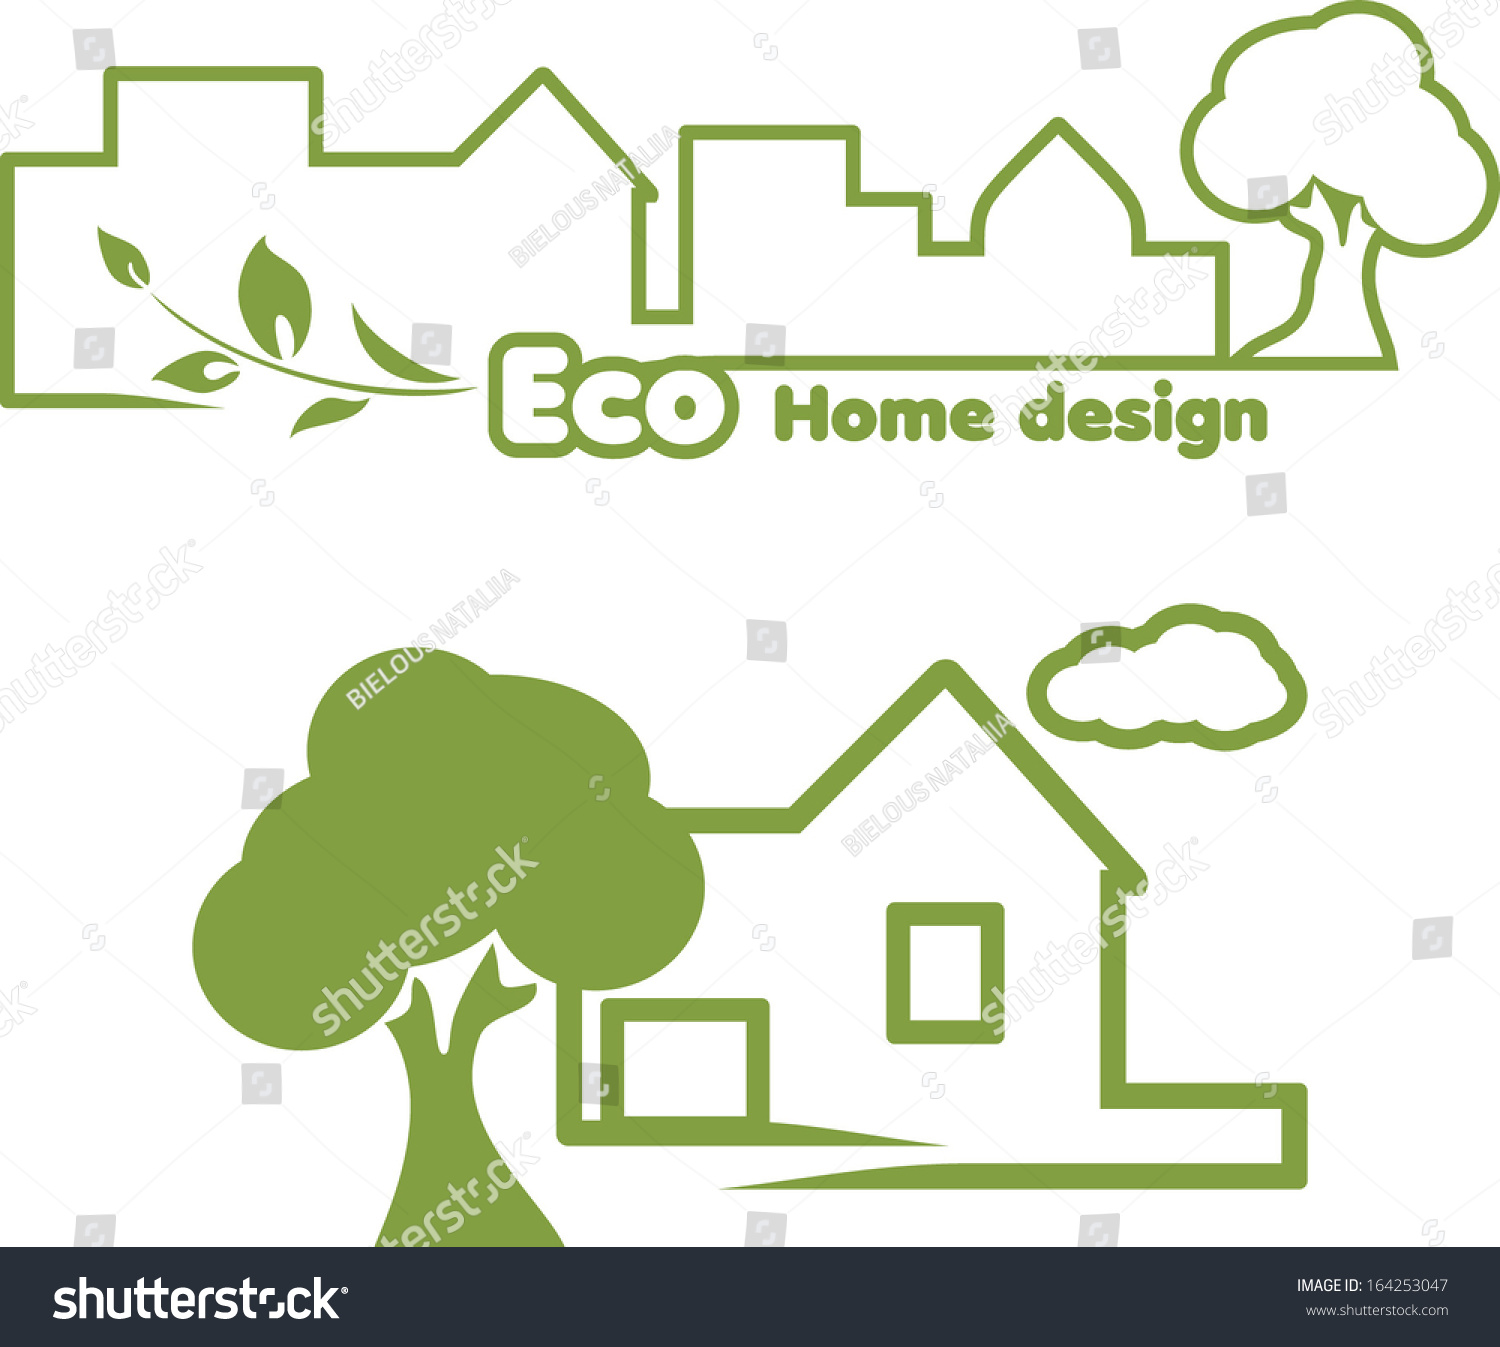 Eco Home Design. Icons For Design. Vector